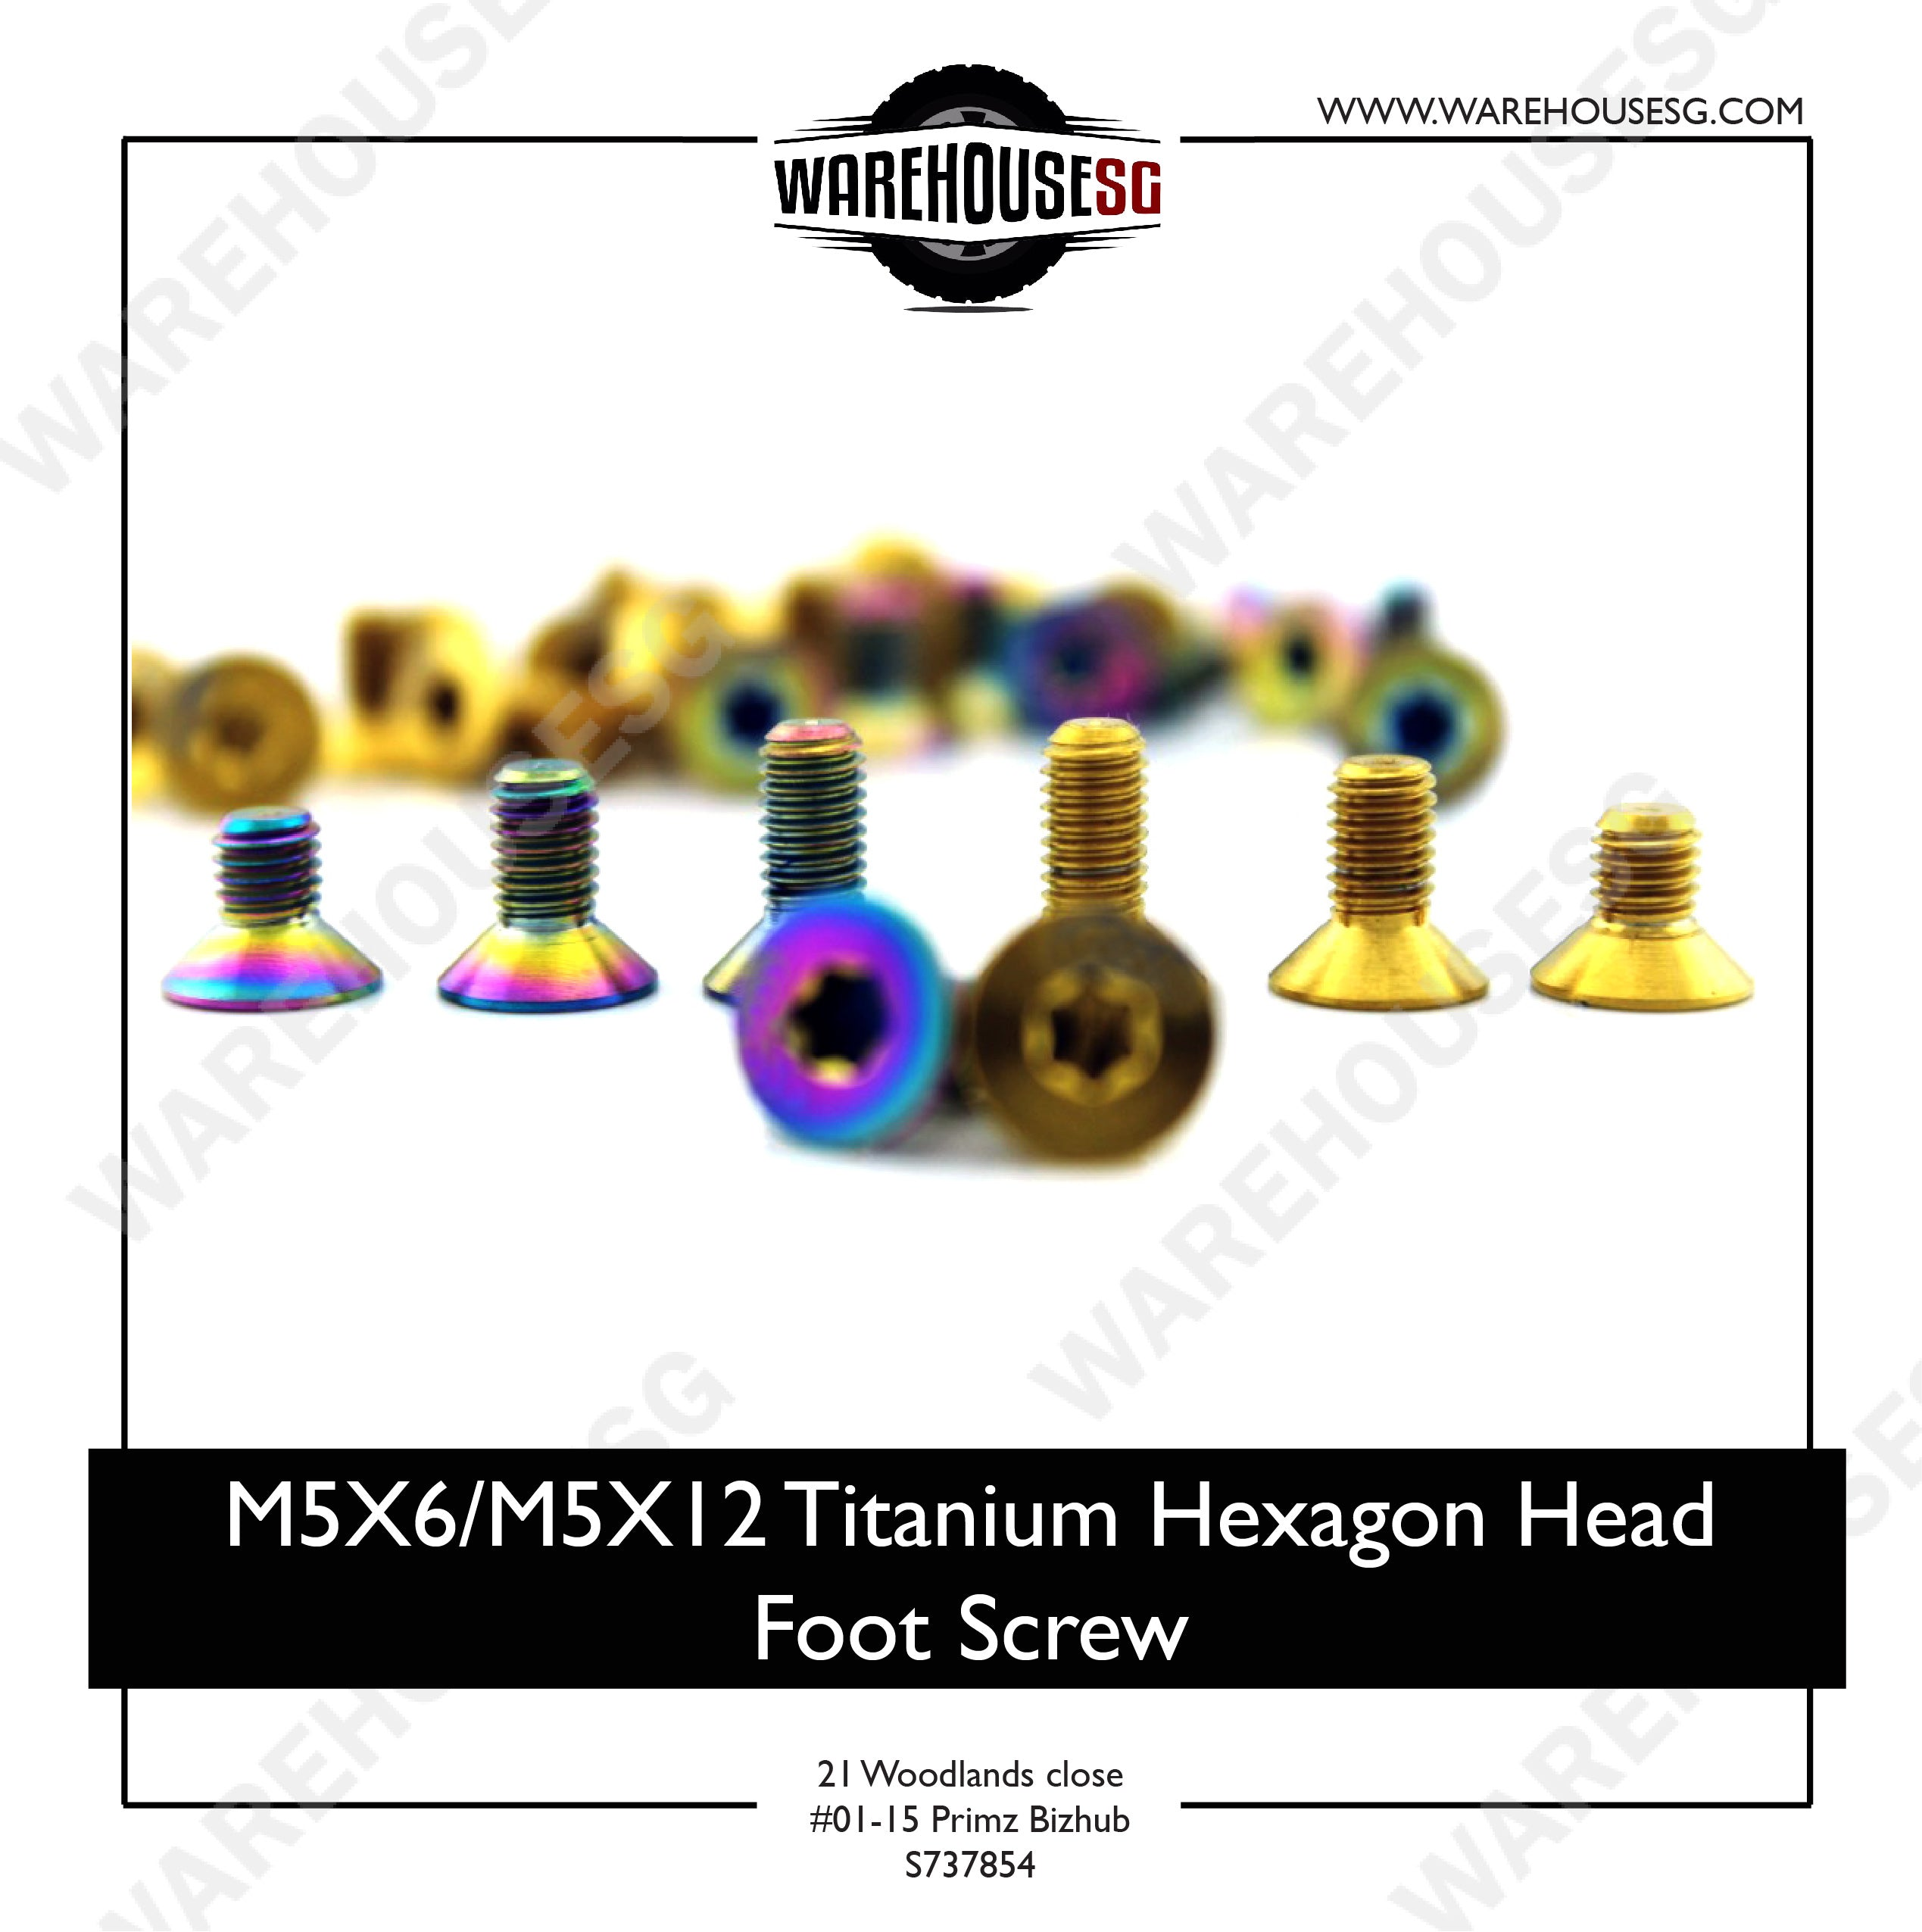 M5X6/M5X12 Titanium Hexagon Head Foot Screw